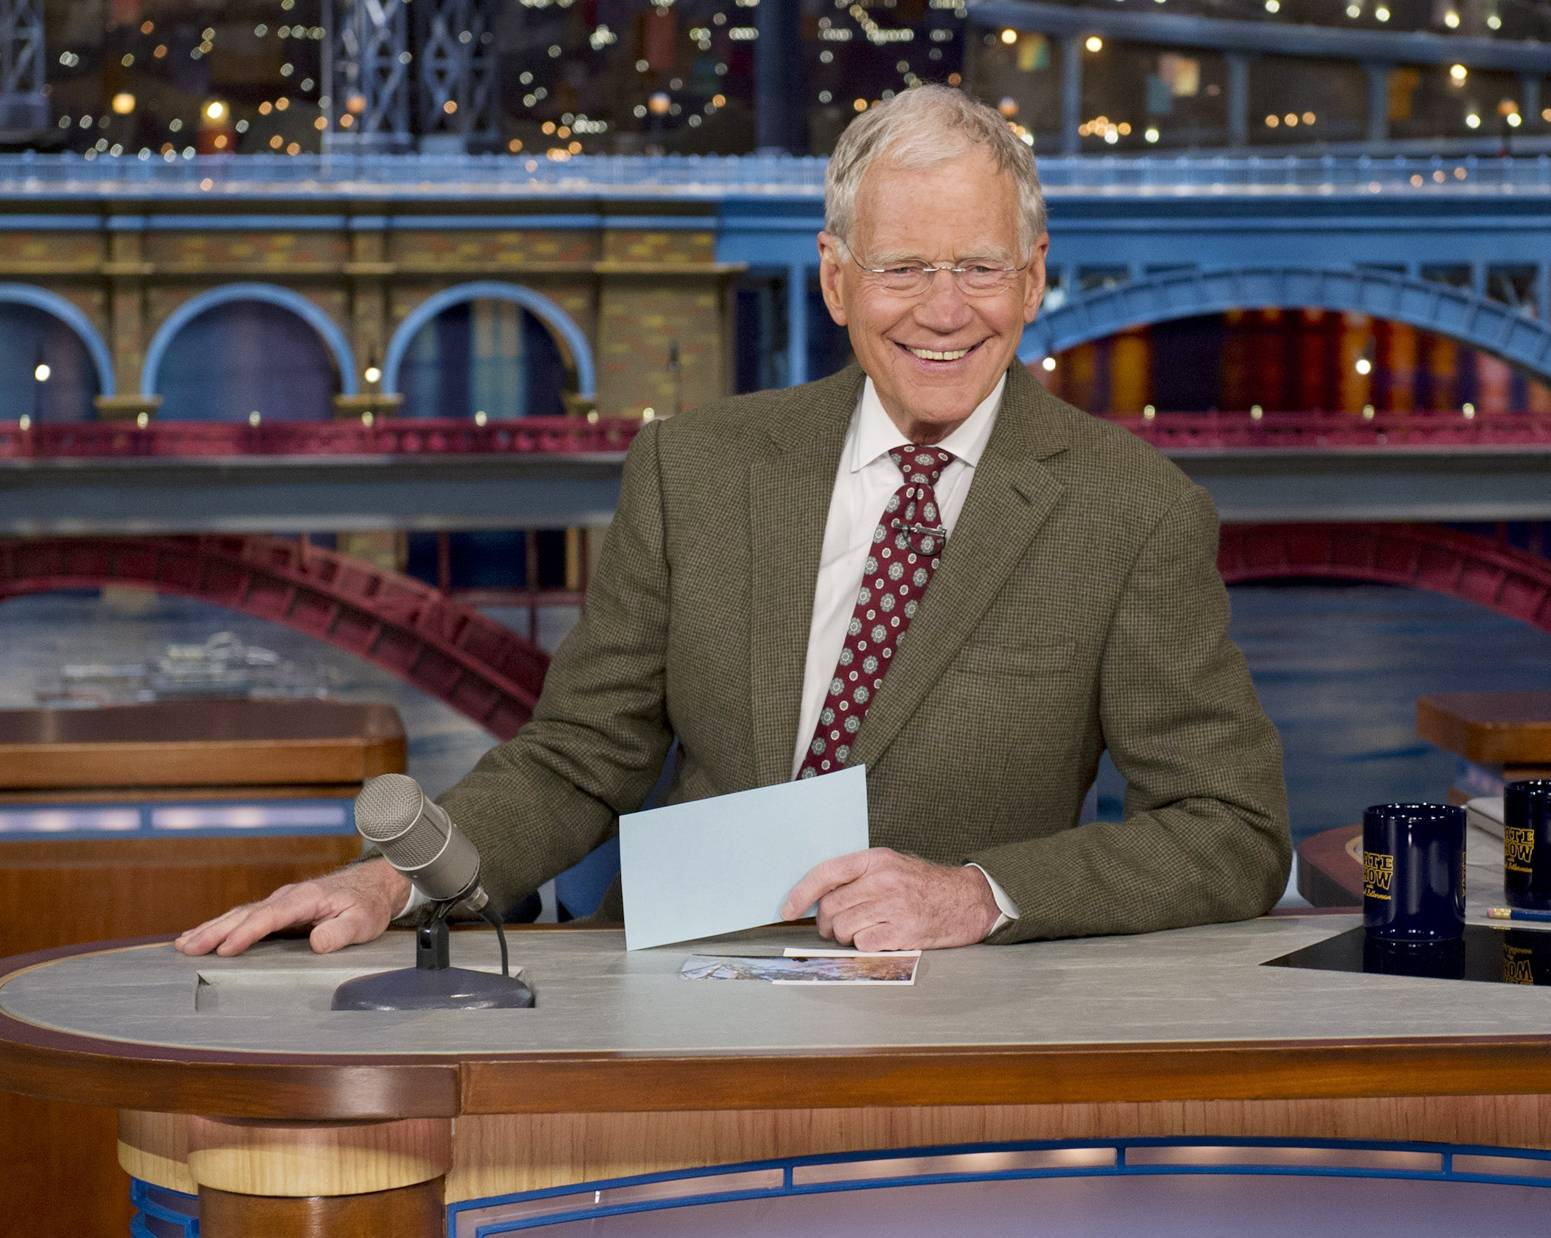 "David Letterman, host of the ""Late Show with David Letterman"" on CBS, announced Thursday that he will retire in 2015 when his contract expires. He announced no specific end date, telling his audience he expects his exit will be in ""at least a year or so, but sometime in the not too distant future, 2015, for the love of God, (band leader) Paul (Shaffer) and I will be wrapping things up."""